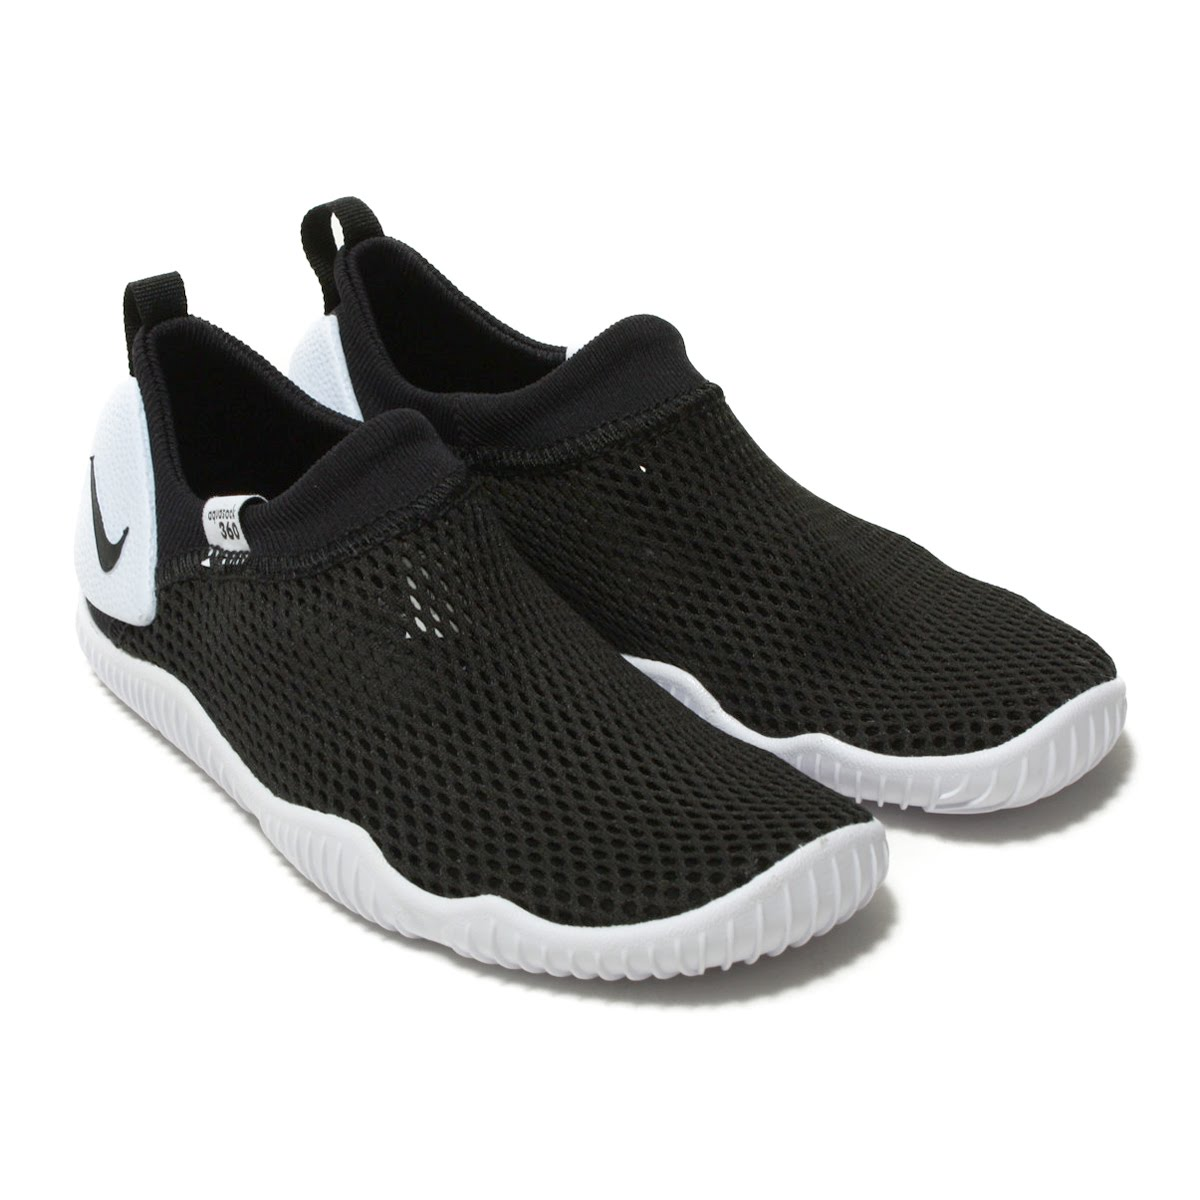 5d3e99b8fb アクアソック which came up as shoes for outdoor in 1985. The model who let  hi-tech sneakers developed for aquatic sports changed the material of the  upper ...